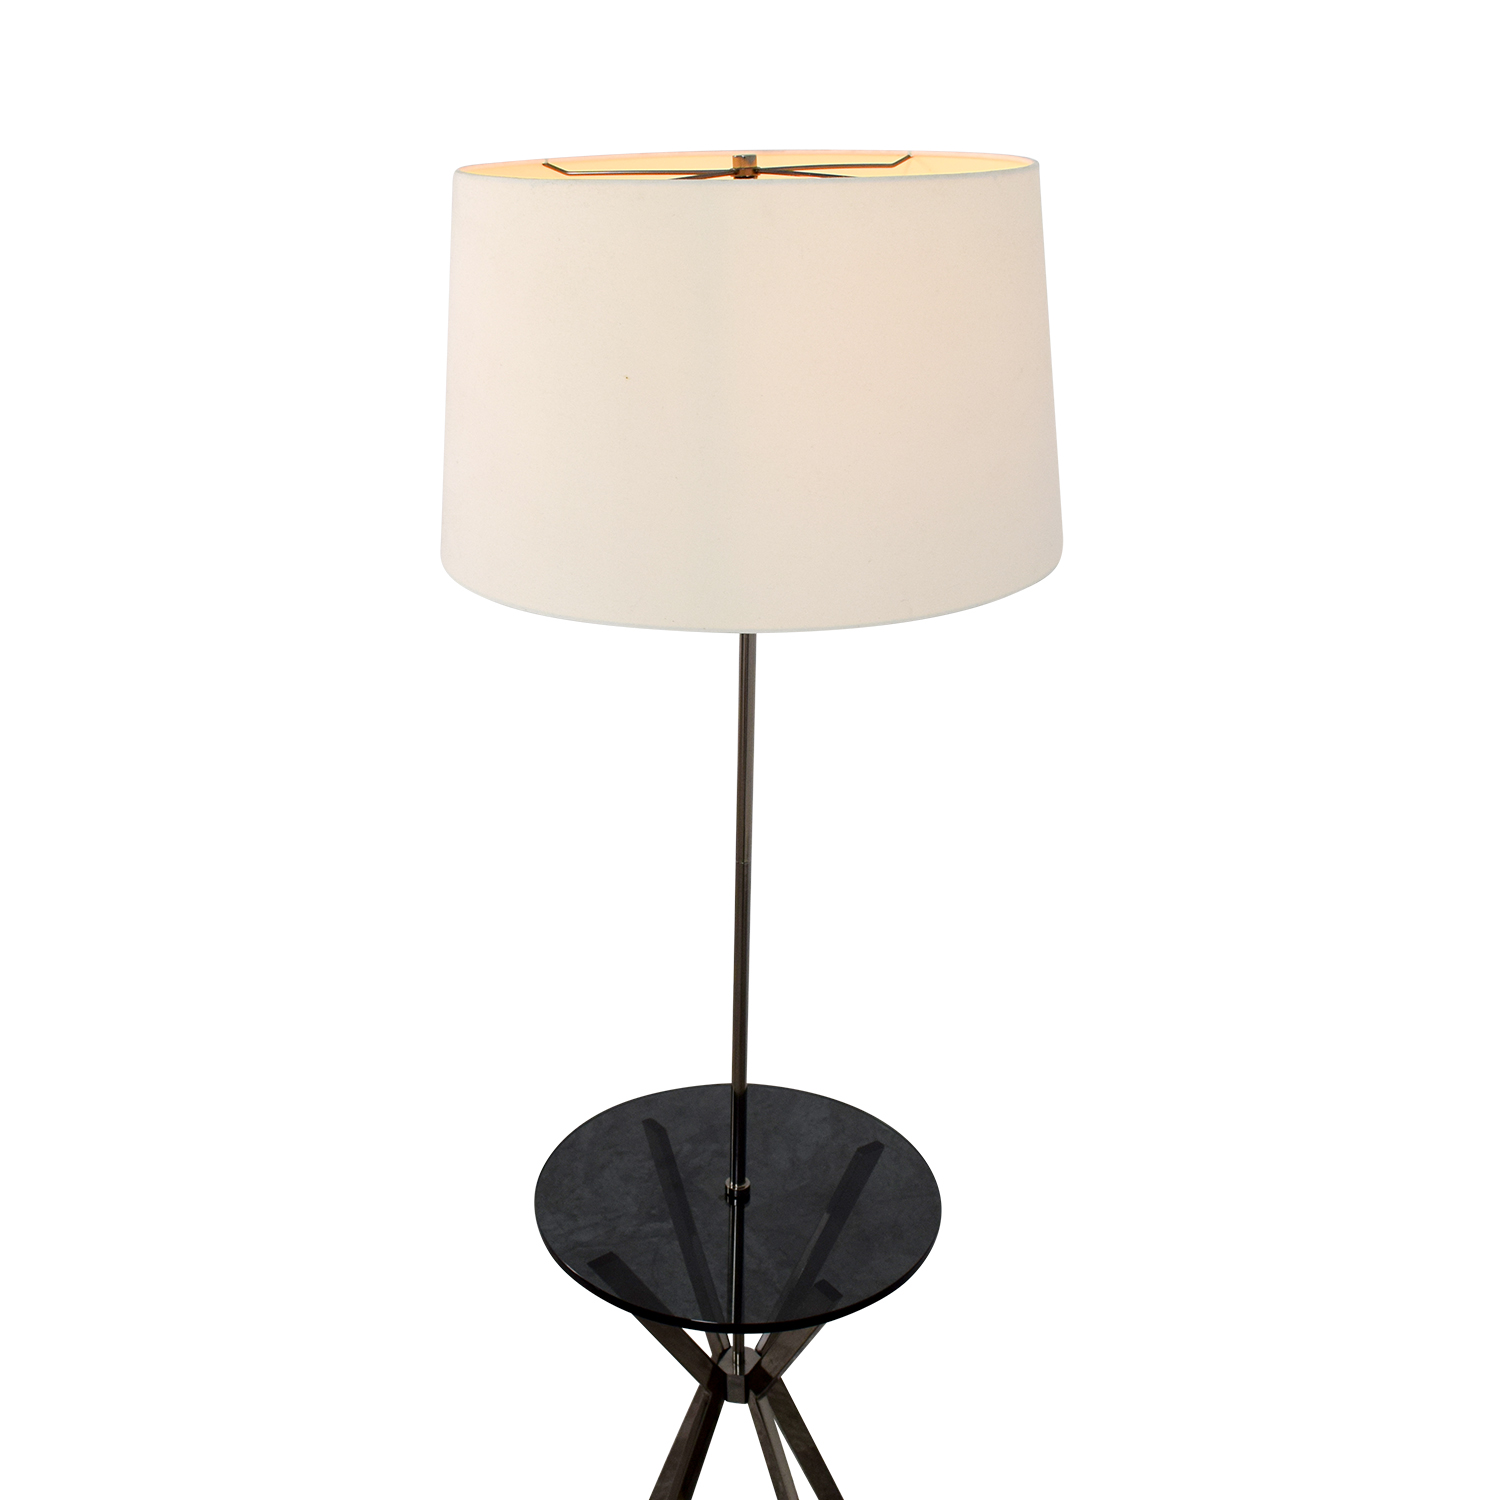 59 Off West Elm West Elm Floor Lamp With Table Attached Decor